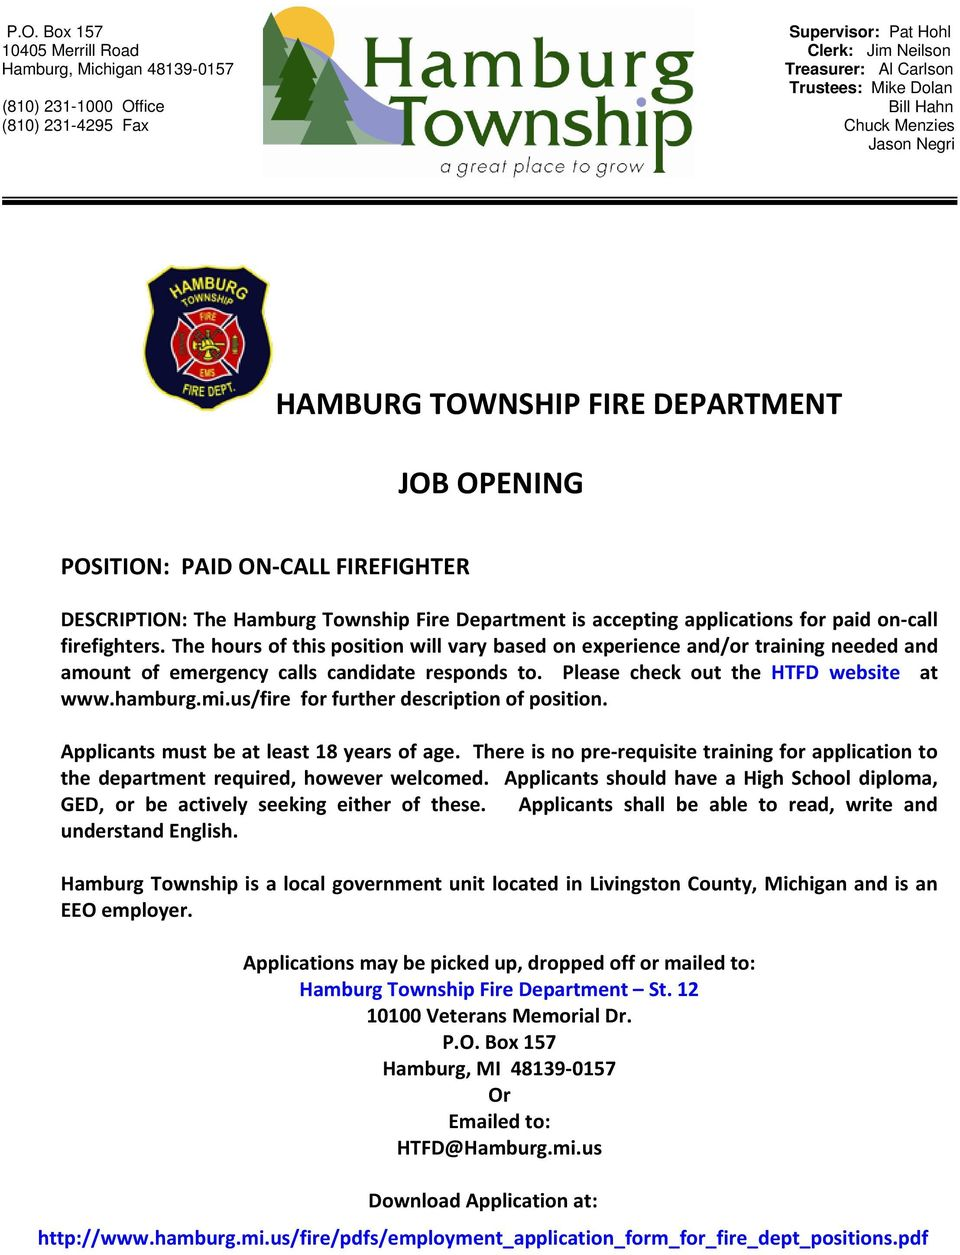 firefighters. The hours of this position will vary based on experience and/or training needed and amount of emergency calls candidate responds to. Please check out the HTFD website at www.hamburg.mi.